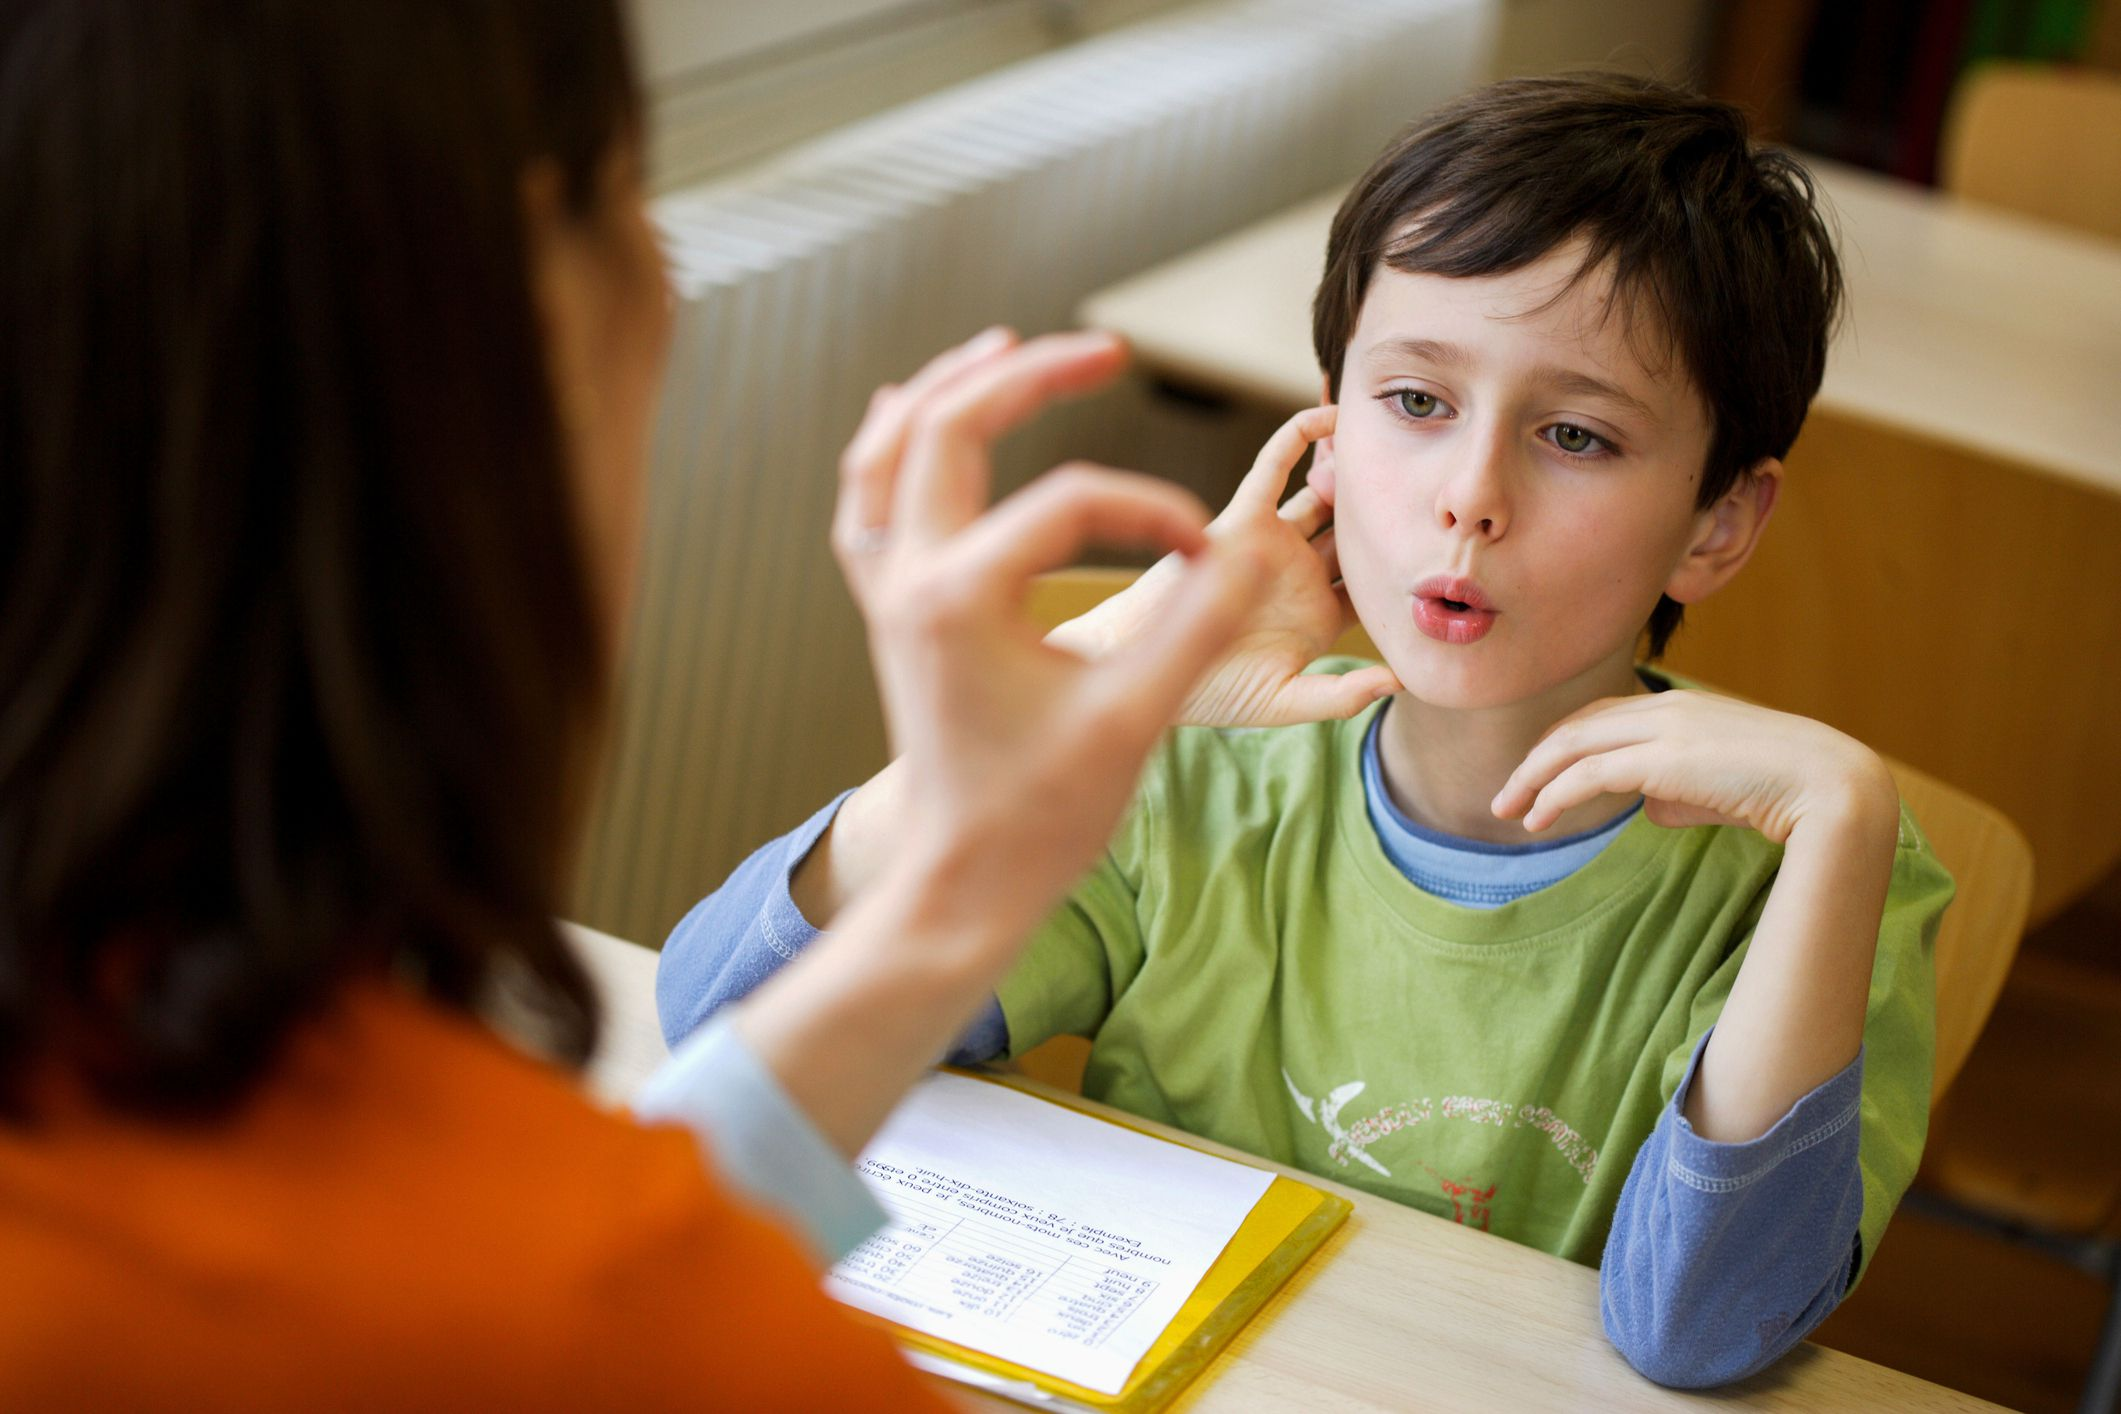 help with speech therapy A communication partner can be a big help with speech therapy exercises a helper can let you know whether an answer is correct or clear, provide cues when you're stuck, or engage in conversation to help you practice a strategy.